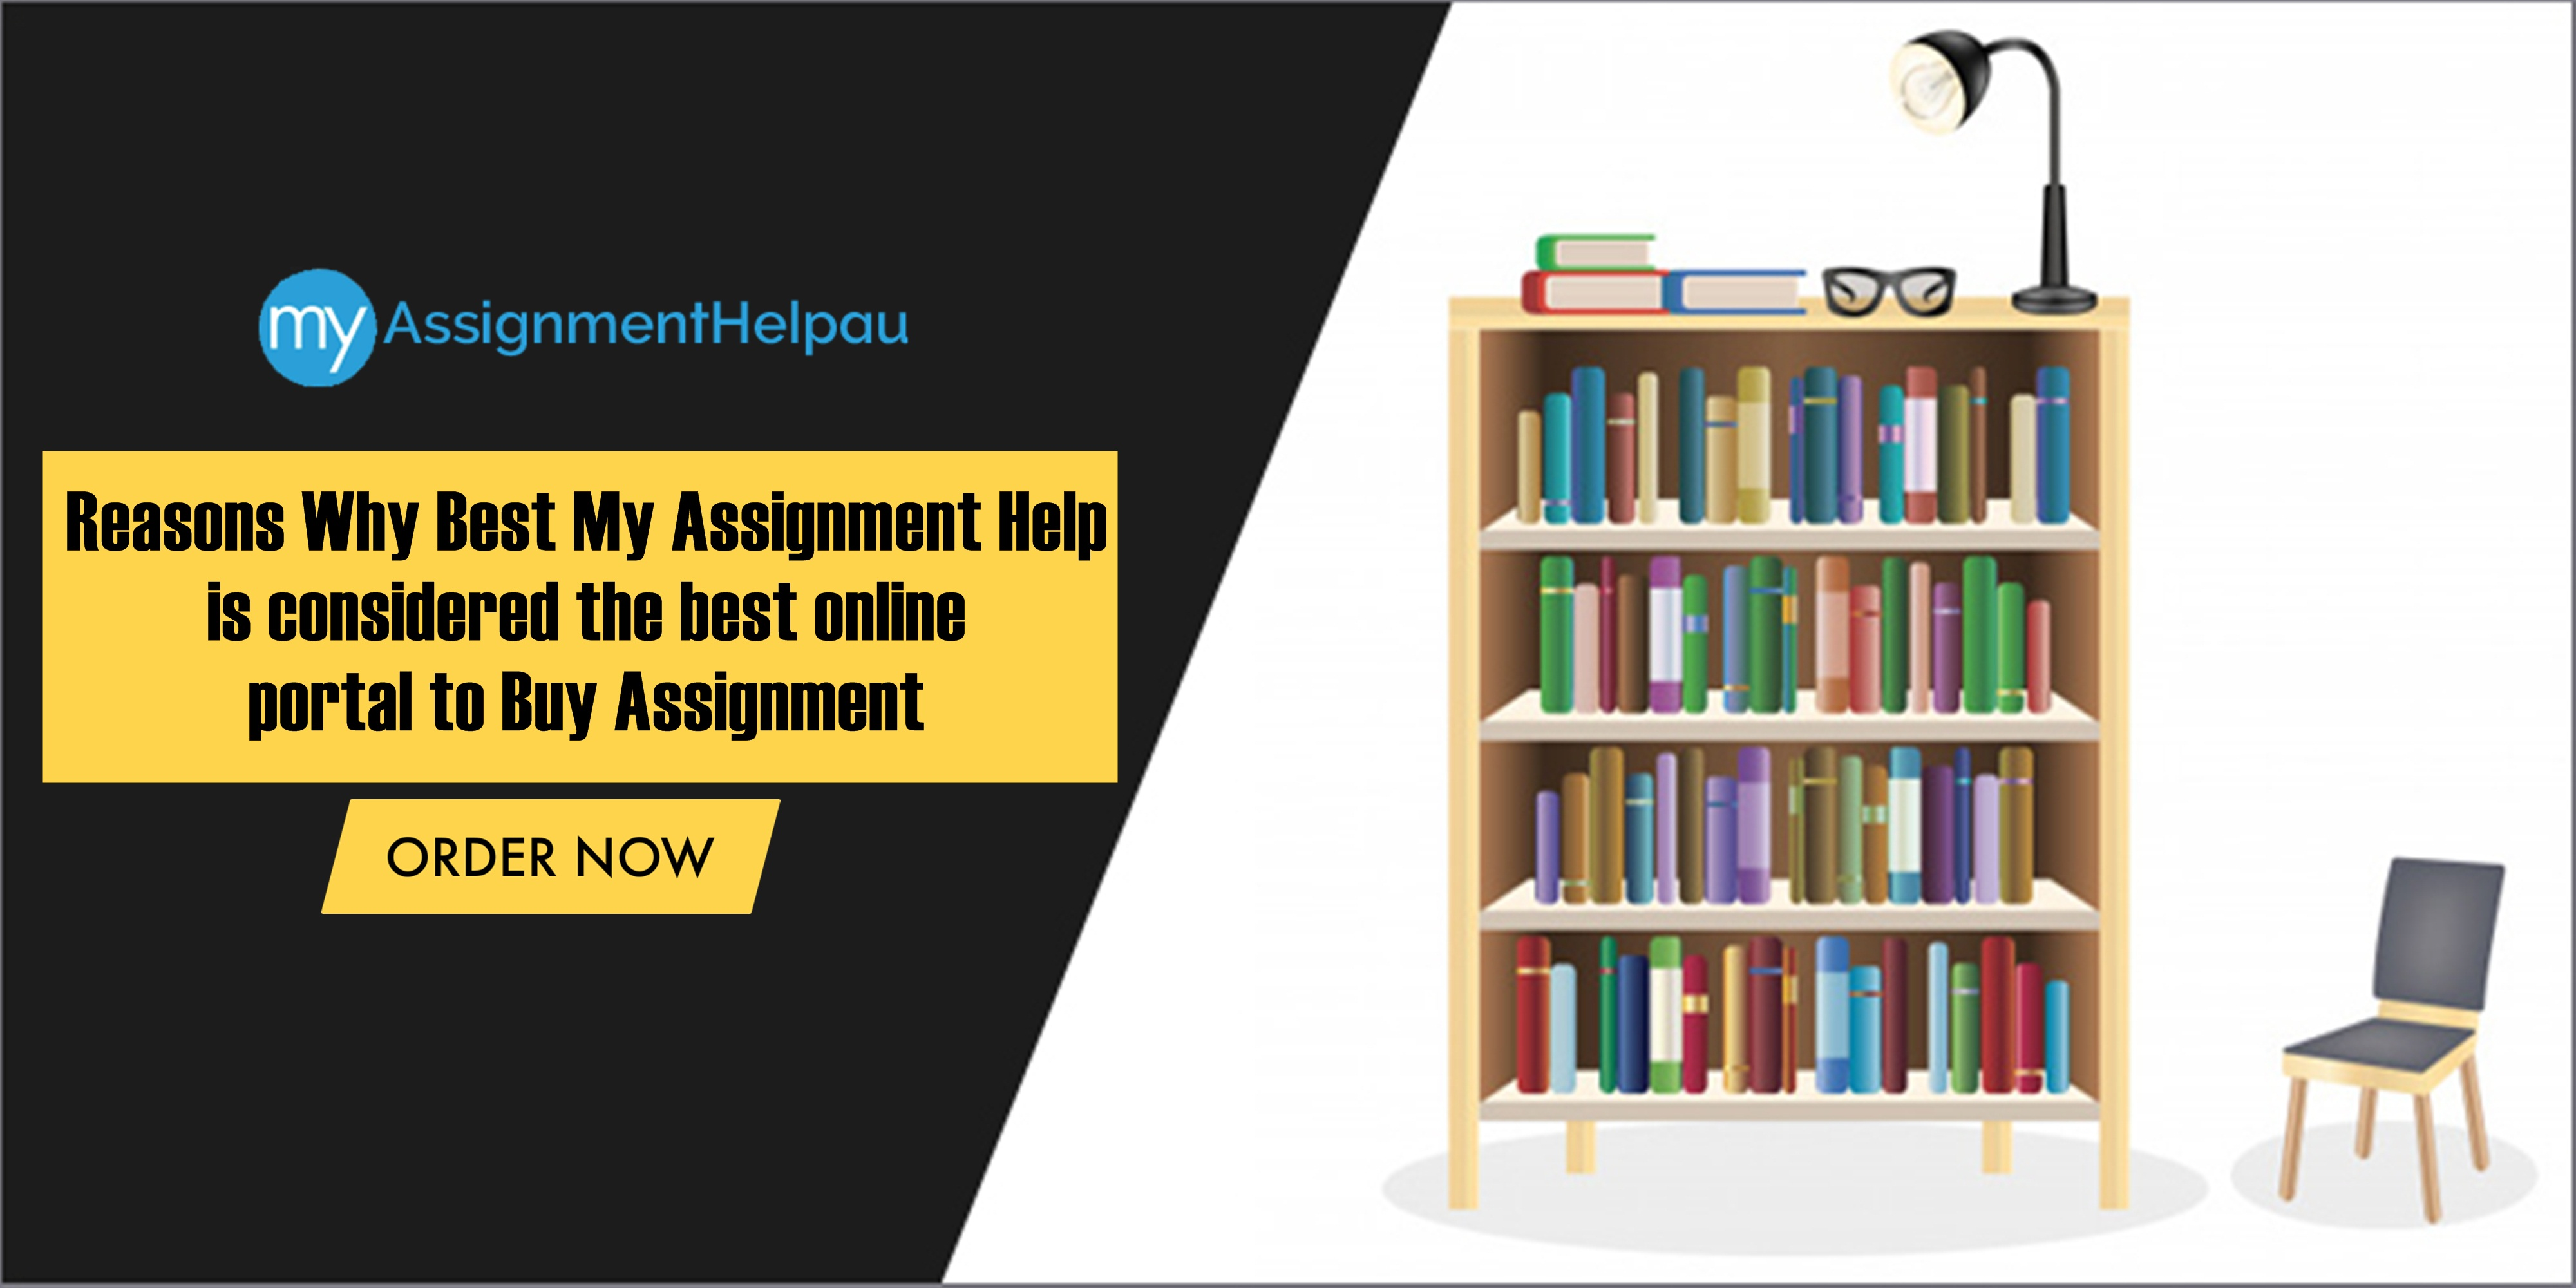 6 Reasons Why My Assignment Help is Considered the Best Online Portal to Buy Assignments